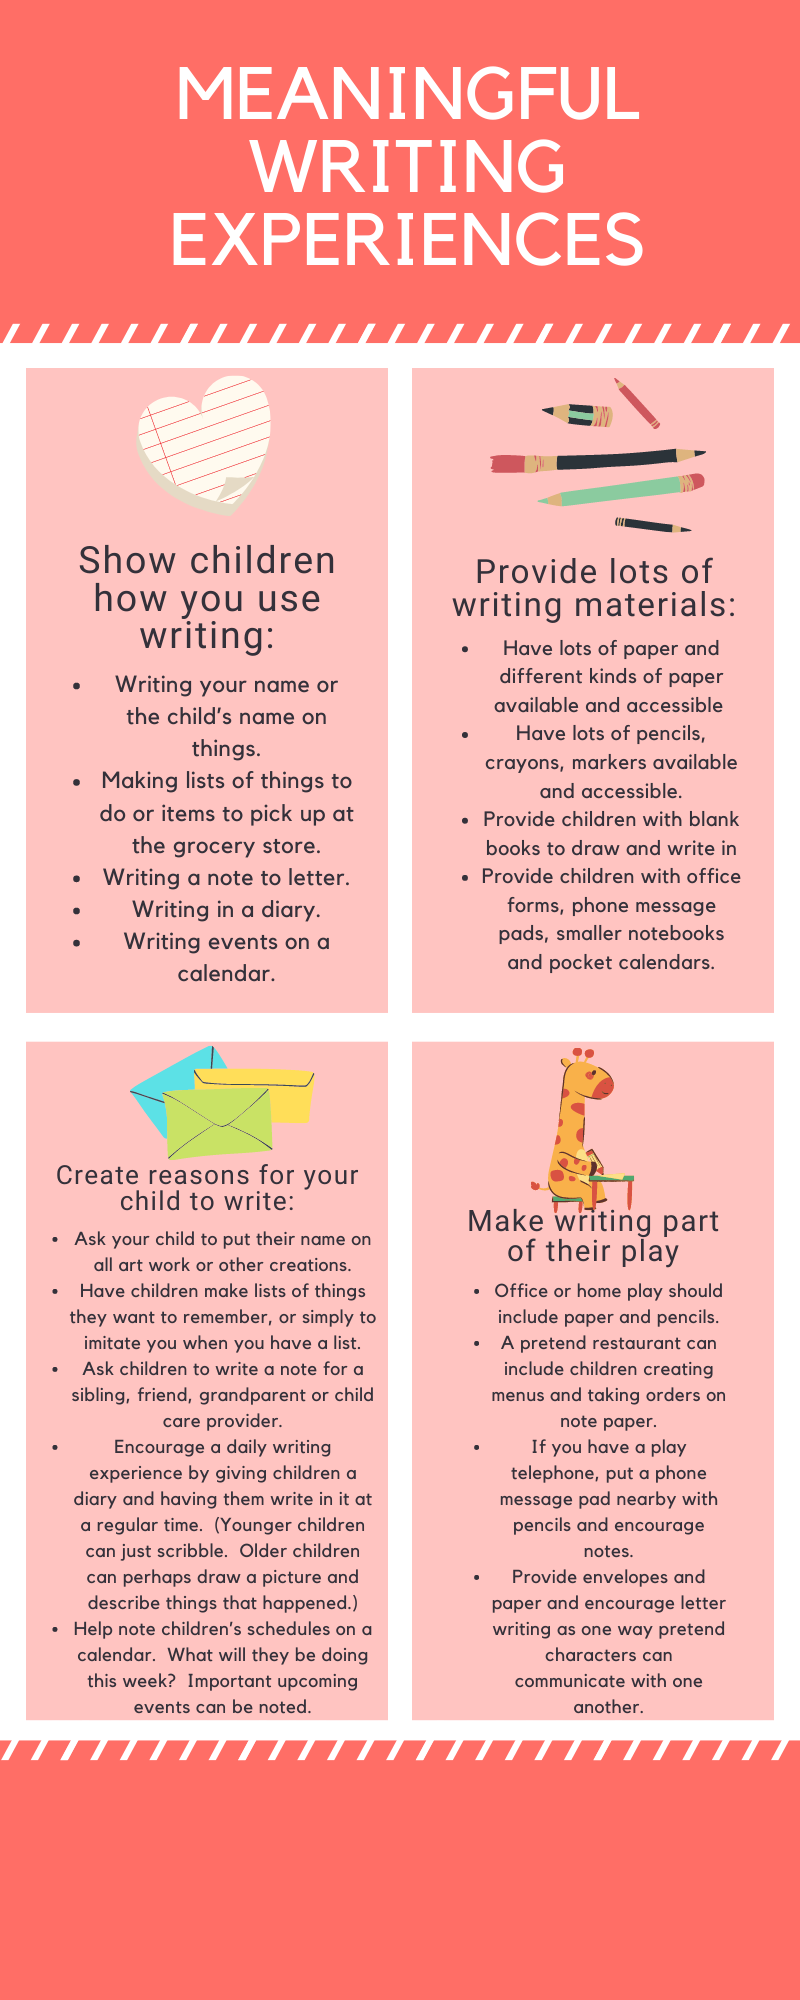 meaningful writing experiences. Show children how you use writing:   Writing your name or the child's name on things. Making lists of things to do or items to pick up at the grocery store. Writing a note to letter. Writing in a diary. Writing events on a calendar.   Provide lots of writing materials:   Have lots of paper and different kinds of paper available and accessible (for example, in the child's room and in a play area). Have lots of pencils, crayons, markers available and accessible. Provide children with blank books to draw and write in. Provide children with office forms, phone message pads, smaller notebooks and pocket calendars.   Create reasons for your child to write: Of course younger children won't be able to actually write.  The point is to ask them to try, help them if they ask (but don't do it for them), encourage them to pretend to write (just like Mommy or daddy does) and praise any effort.  Here are some specific suggestions:   Ask your child to put their name on all art work or other creations. Have children make lists of things they want to remember, or simply to imitate you when you have a list. Ask children to write a note for a sibling, friend, grandparent or child care provider. Encourage a daily writing experience by giving children a diary and having them write in it at a regular time.  (Younger children can just scribble.  Older children can perhaps draw a picture and describe things that happened.) Help note children's schedules on a calendar.  What will they be doing this week?  Important upcoming events can be noted.   Make writing part of their play Children love to pretend.  Add a writing element to pretend play, such as:   Office or home play should include paper and pencils. A pretend restaurant can include children creating menus and taking orders on note paper. If you have a play telephone, put a phone message pad nearby with pencils and encourage notes. Provide envelopes and paper and encourage letter writing as one way pretend characters can communicate with one another.